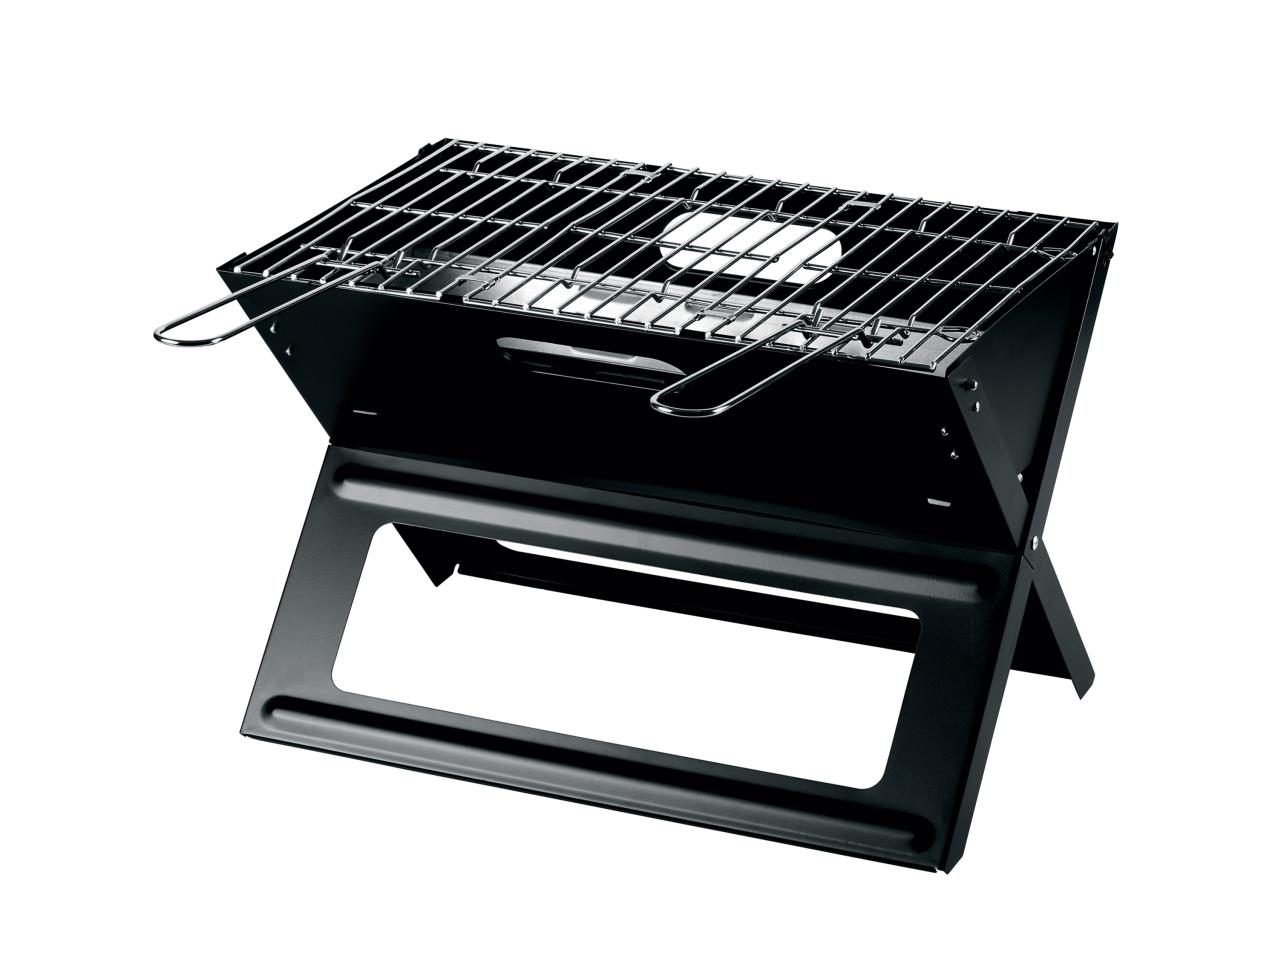 florabest folding barbecue1 - lidl — great britain - specials archive